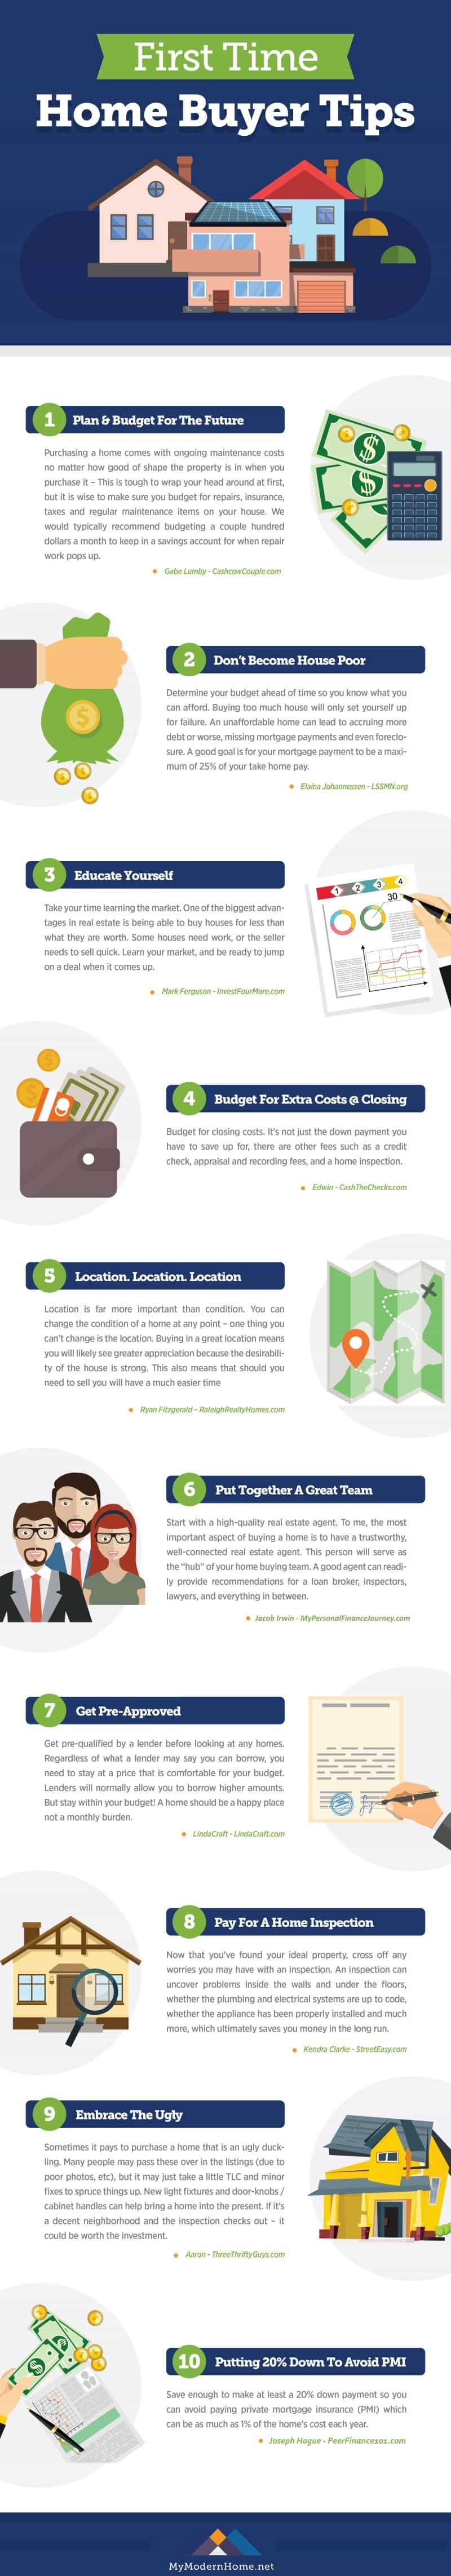 Top-10-Tips-For-New-Home-Buyers-Infographic